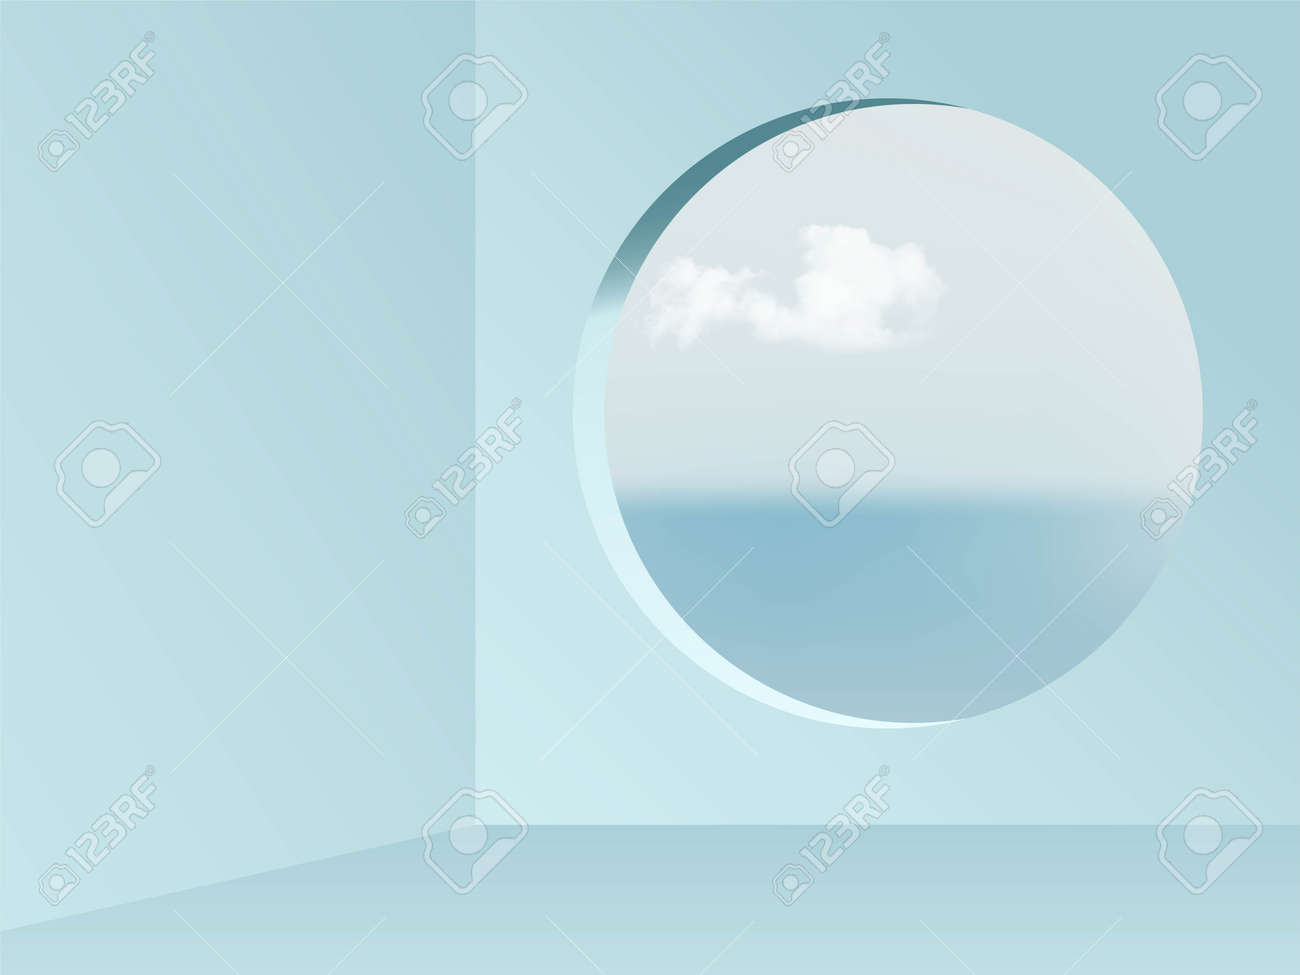 Round window view from blue empty room abstract background. View on blue sky, sea and clouds vector illustration. Abstarct minimal interior design of walls, floor and circular window - 163400604